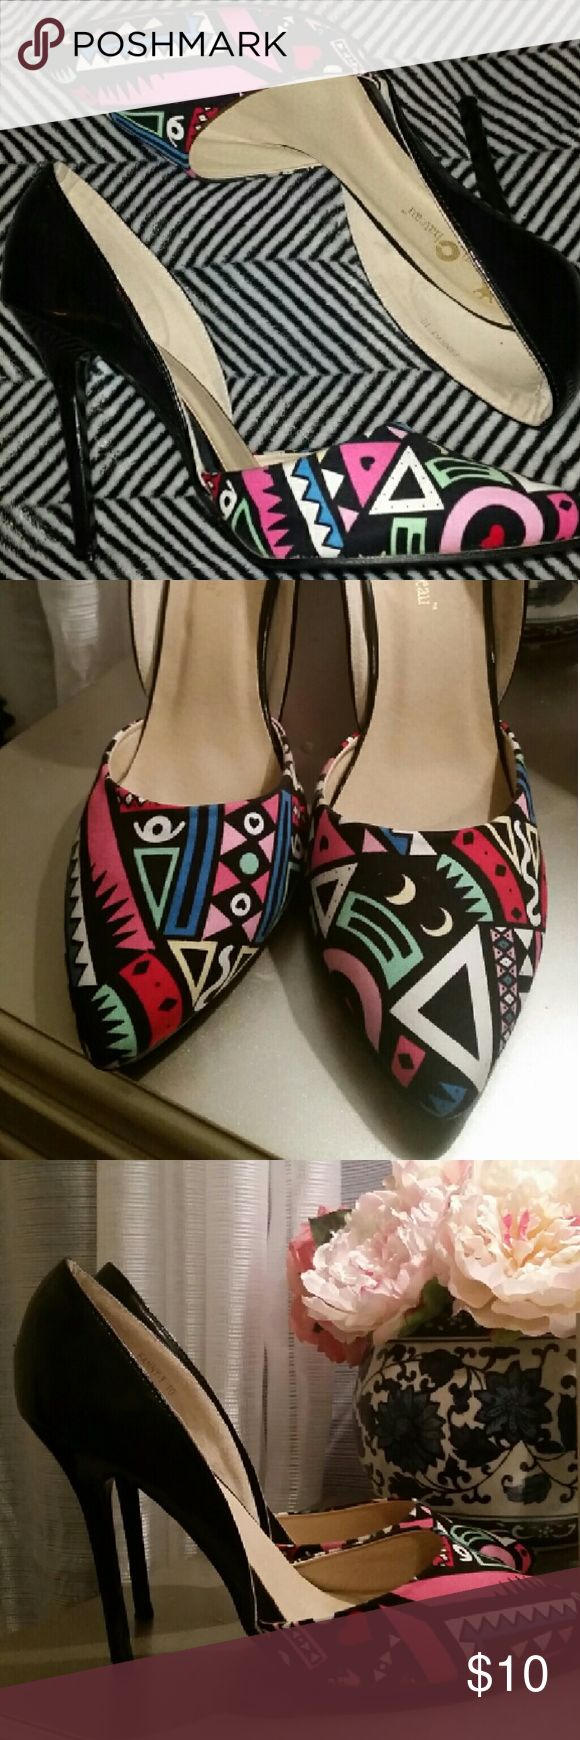 "90s-esque Patterned D'Orsay Pumps Fun pattern on the toe. The colors do pop in person. The back half is faux patent leather.   4.5"" heel Worn once or twice, no box. Queen Chateau Shoes Heels"